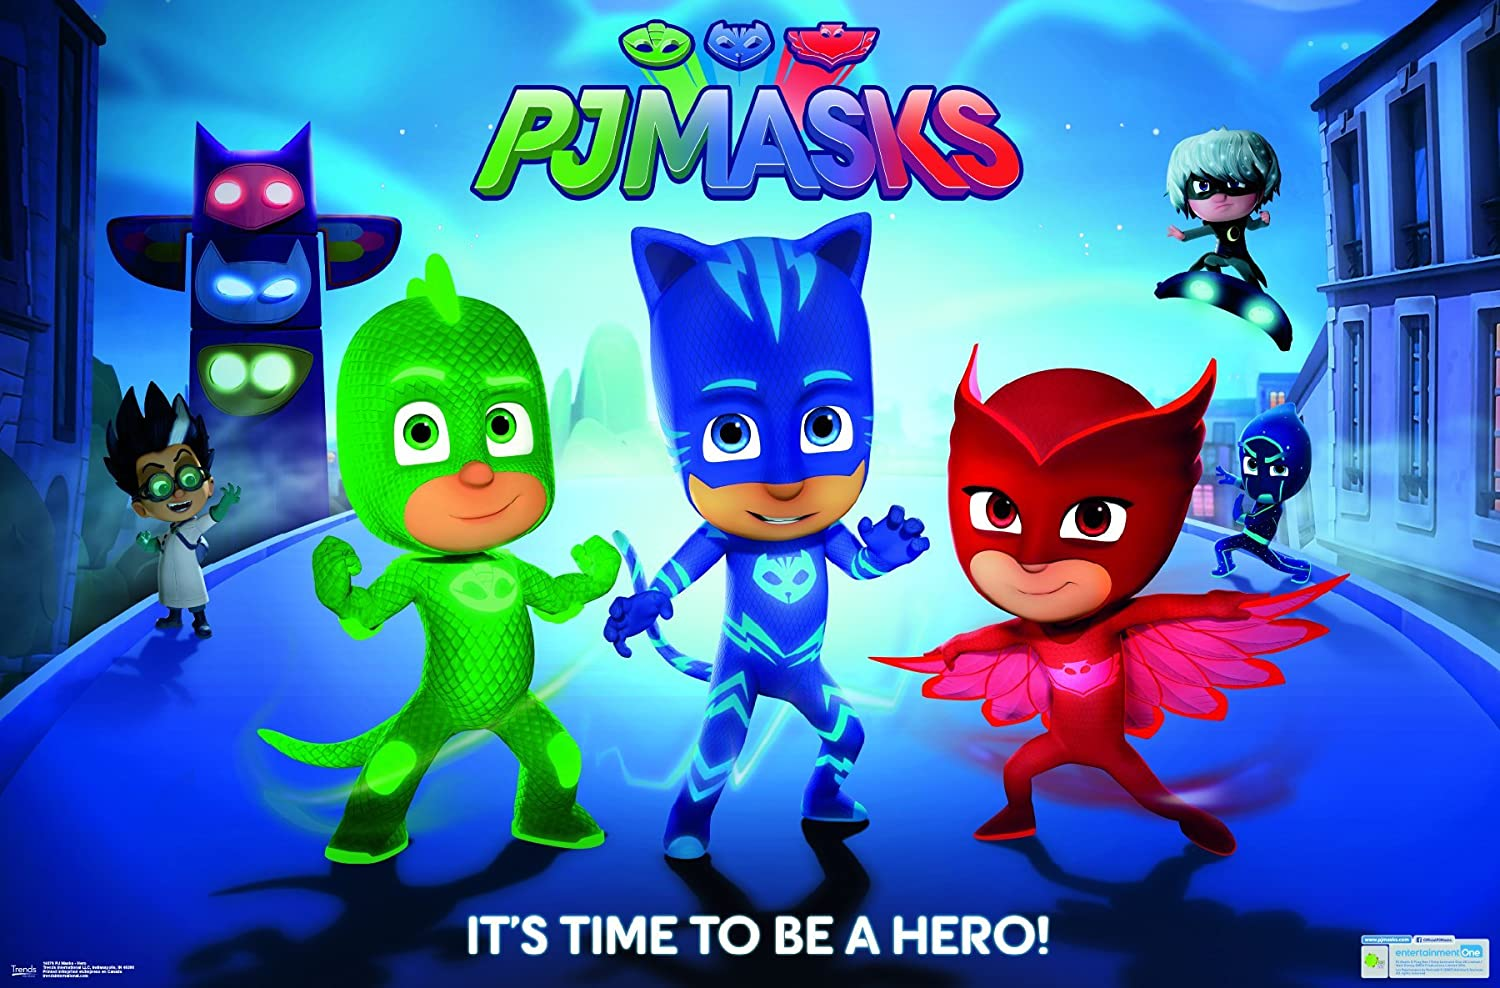 Amazon.com: Trends International PJ Masks Hero Wall Poster 22.375